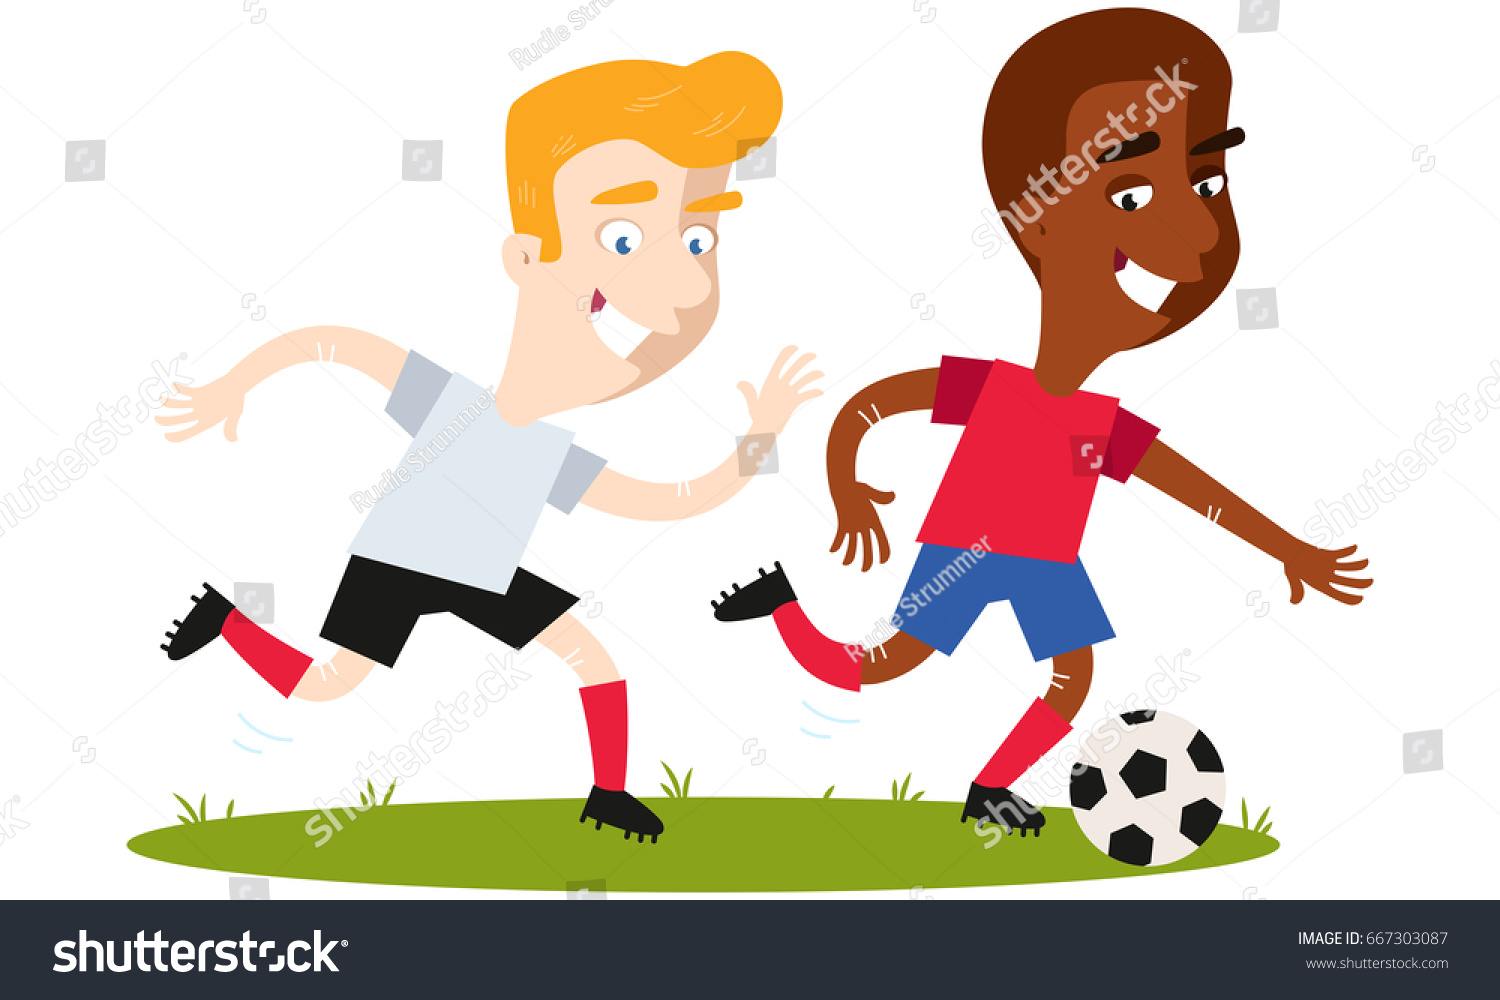 Two boy playing soccer stock illustration. Illustration of adorable -  60927270